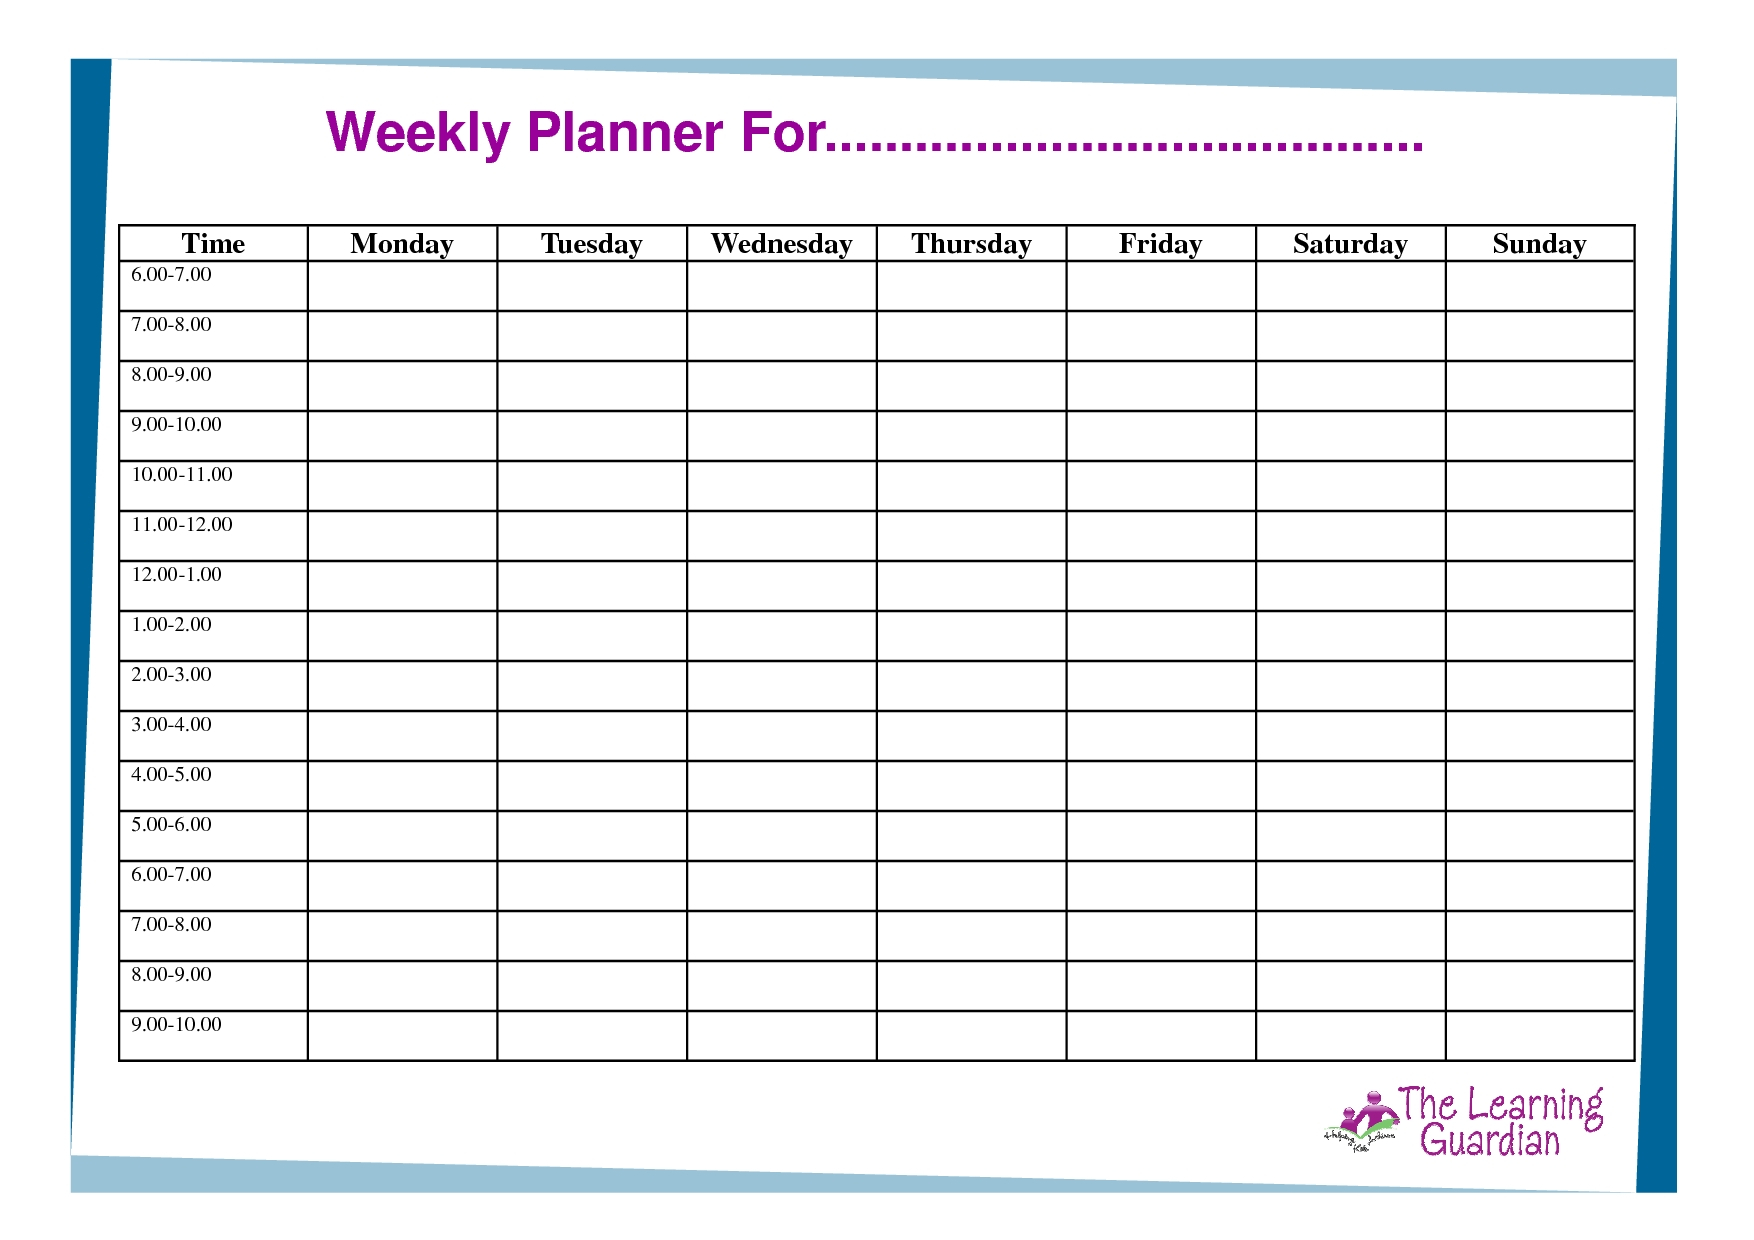 Monday To Friday Planner Template  Calendar Inspiration Design pertaining to Calendar Template Monday Through Friday